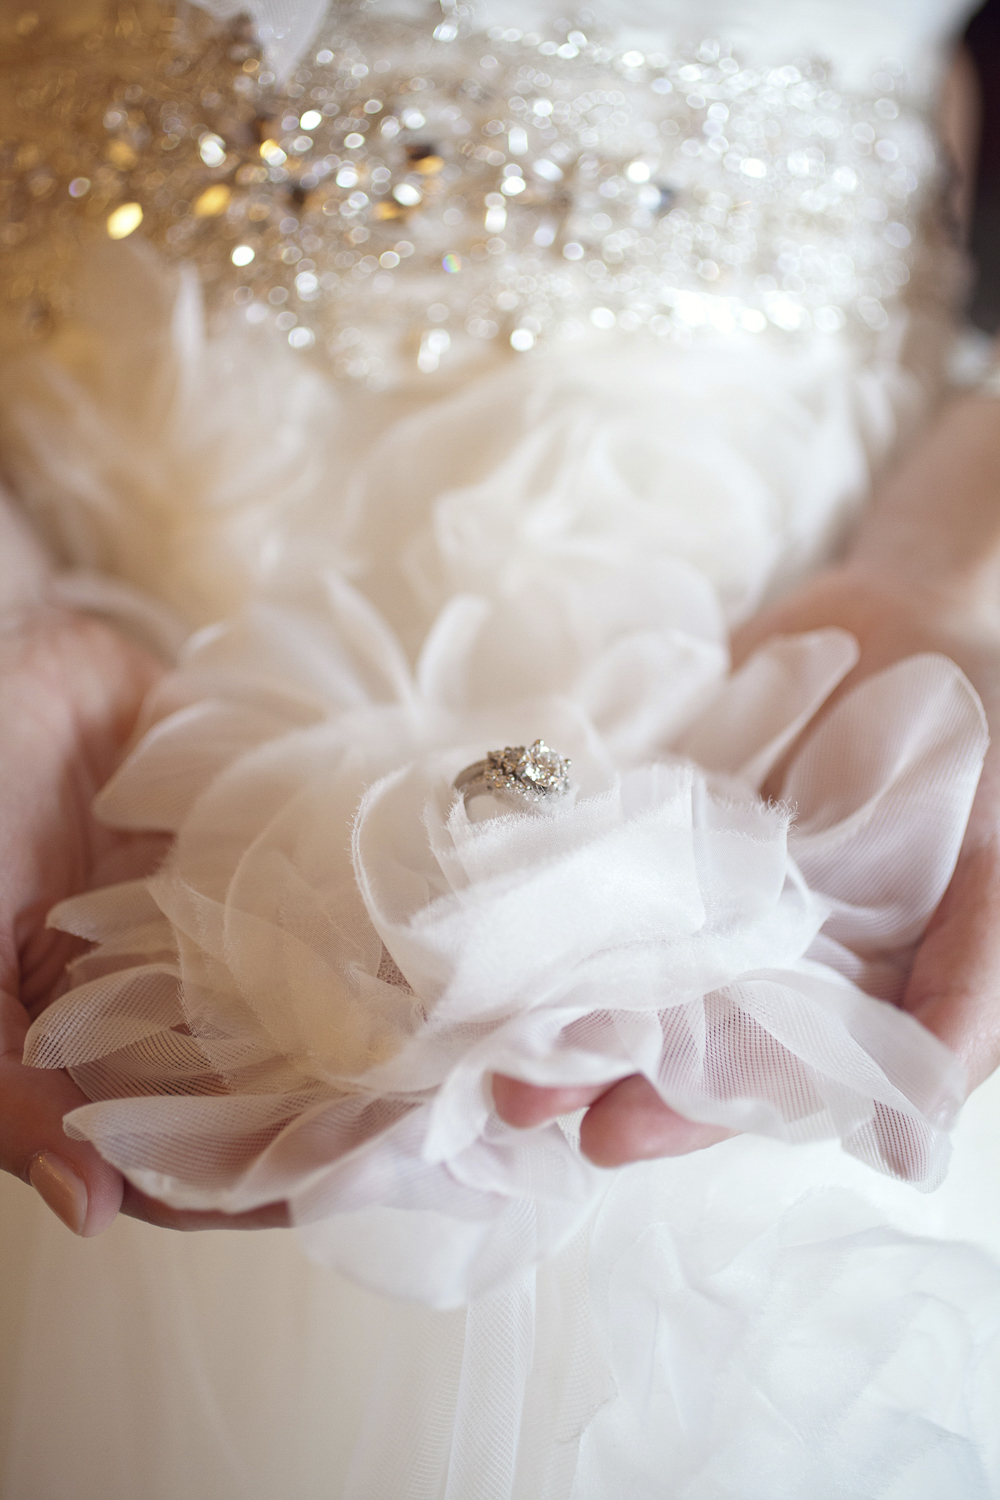 Indianapolis-Indiana-Wedding-Photographer-Crowes-Eye-Photography-Rings-detail.jpg